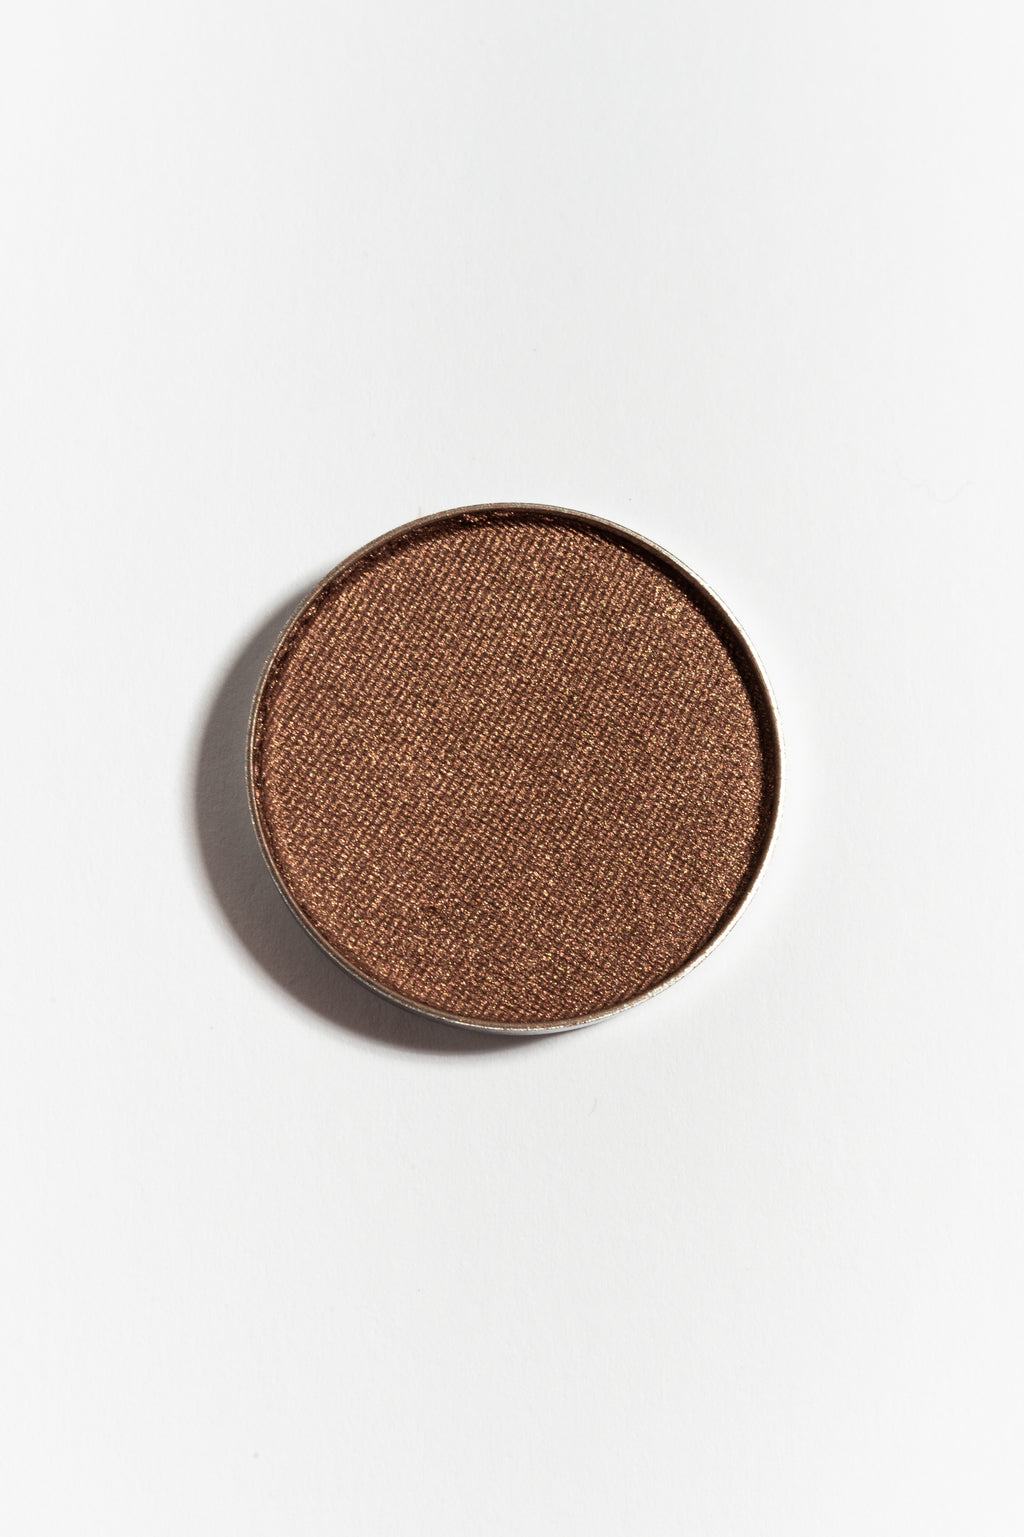 Eye shadow pan in Ginger Snaps